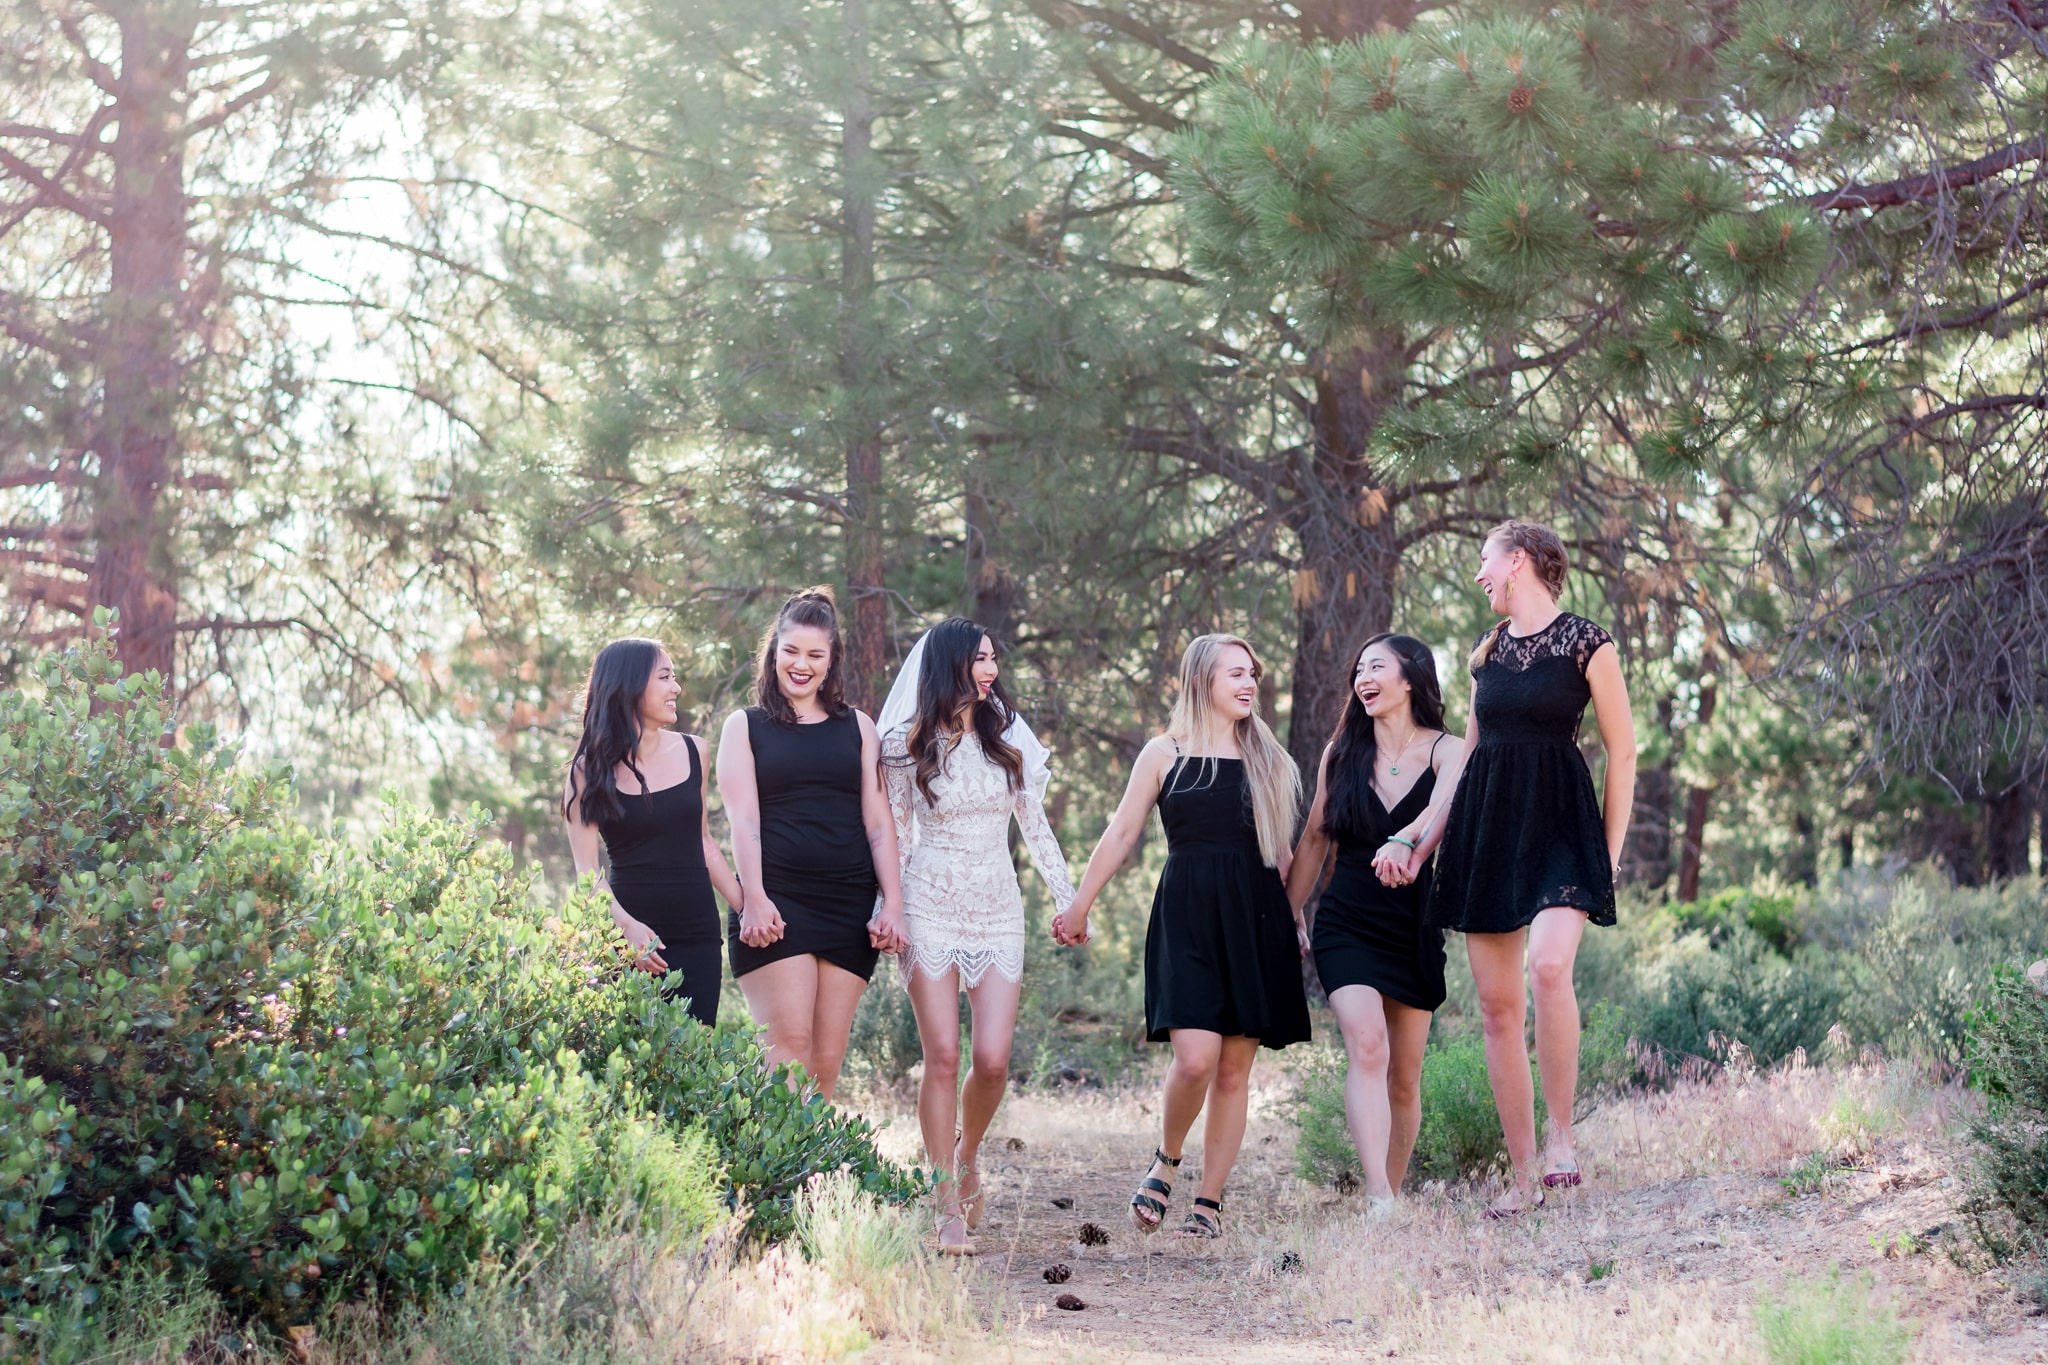 Bachelorette party planning ideas for the best Bend, Oregon bachelorette party! In this blog I share bachelorette party outfit ideas for the bride and bridesmaid and inspiration for party decorations and brunch! Perfect tips for planning a central Oregon bachelorette party! -Elizabeth Hite Photography | Portland Oregon Photographer